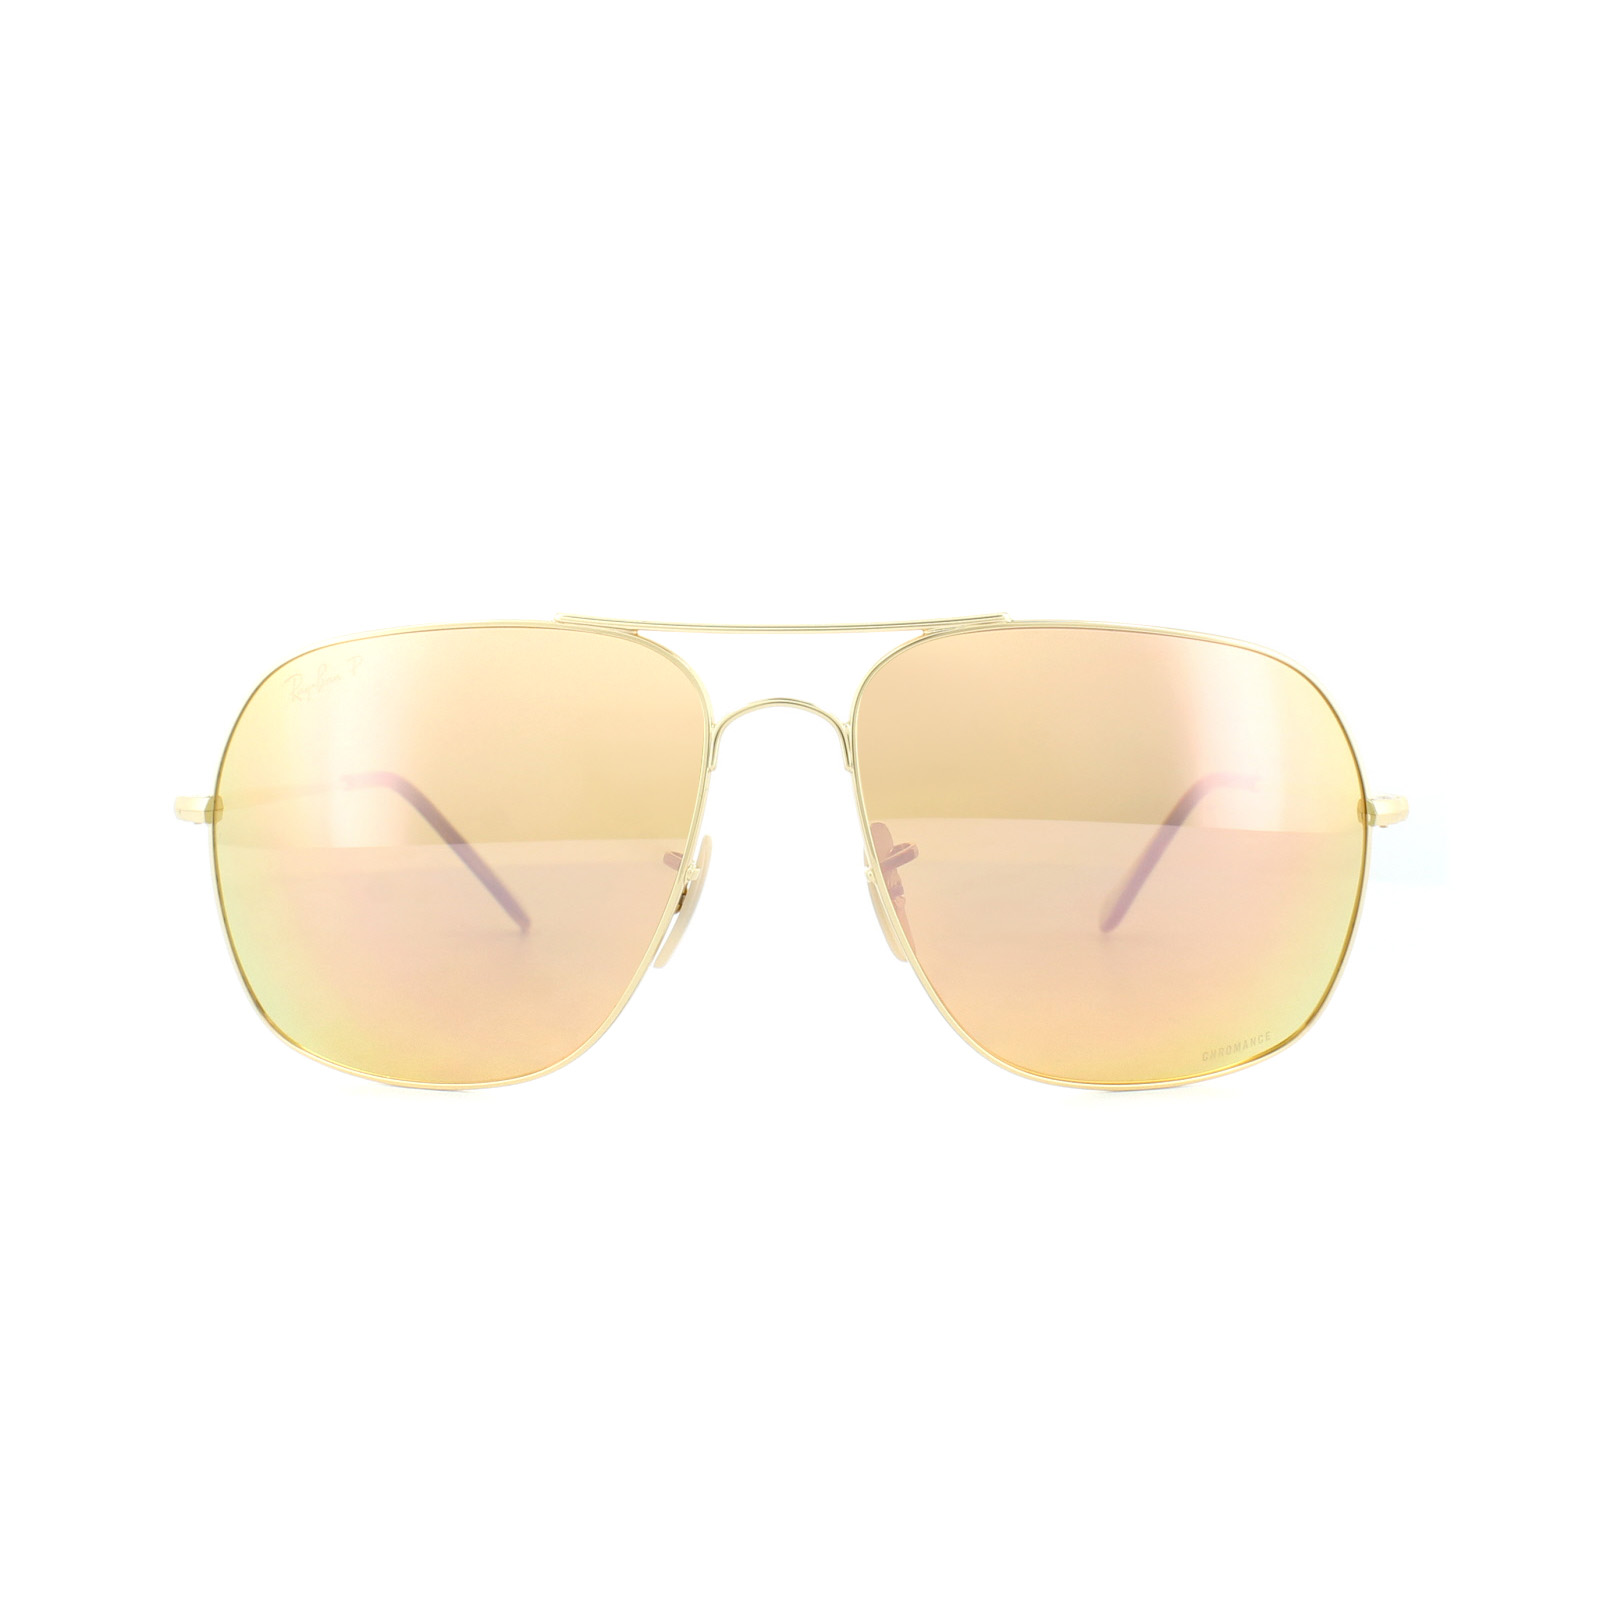 75bcd00e869 Sentinel Ray-Ban Sunglasses 3587CH 001 I0 Gold Polarized Pink Mirror  Chromance